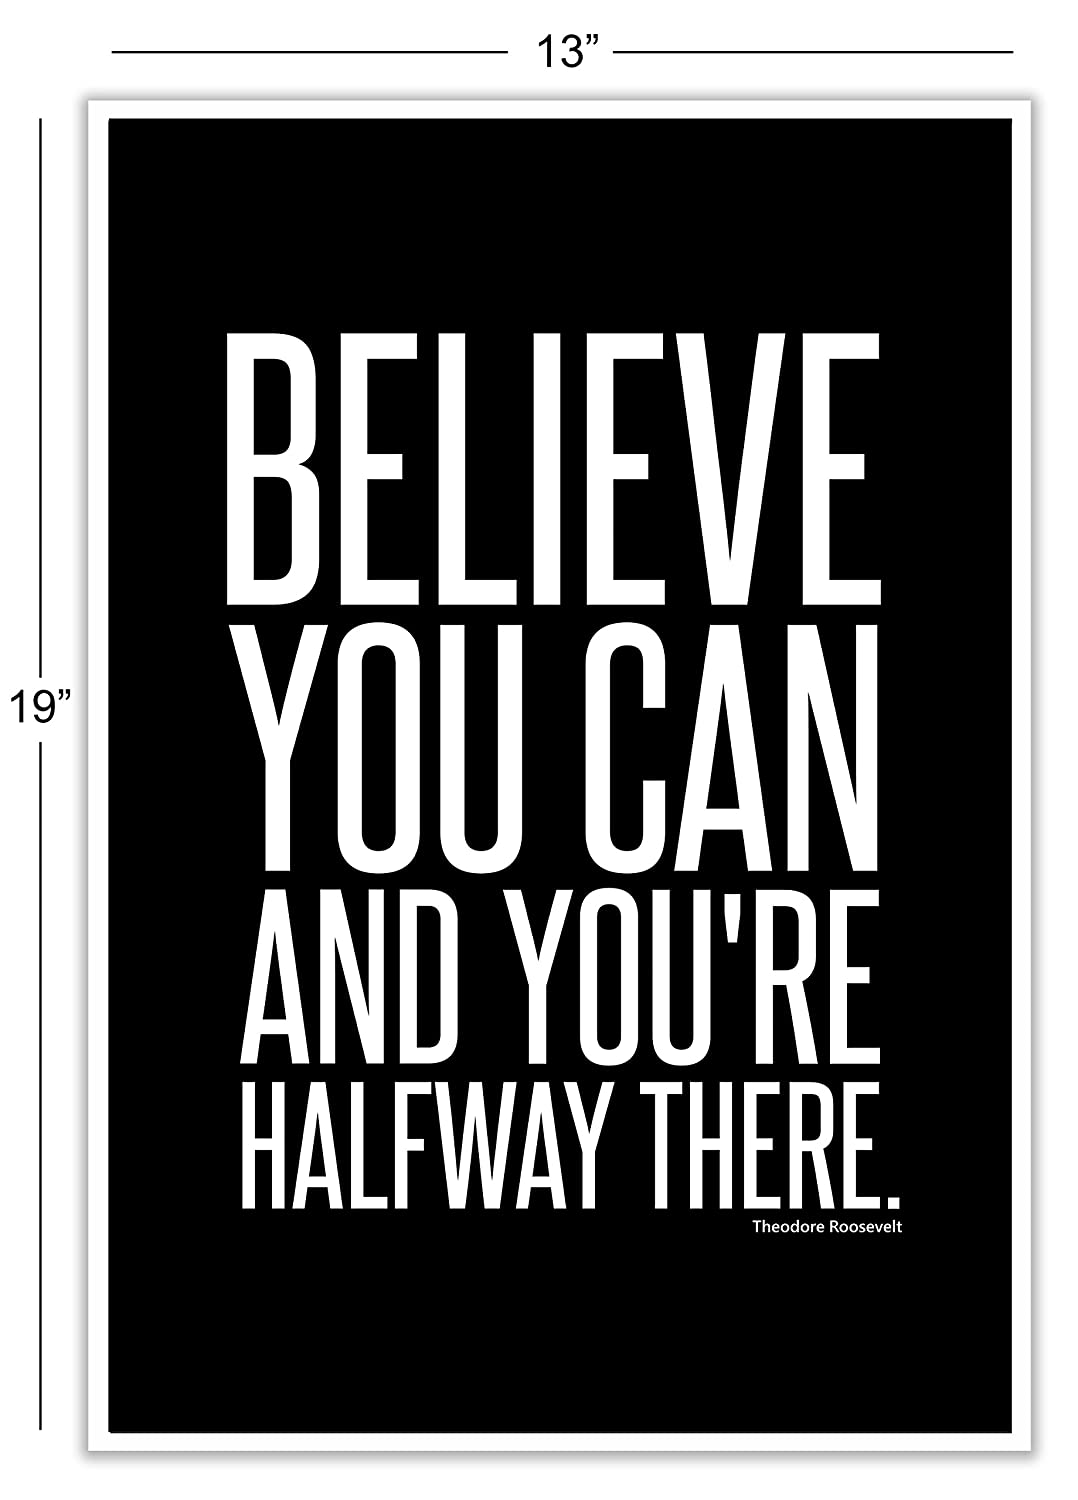 Motivational Inspirational Famous Quotes Teen Boy Girl Sports Wall Art Posters Decorative Prints Black White Workout Fitness Wall Decor Home Office Business Classroom Dorm Gym Entrepreneur The Proverbs Store 8 x 10